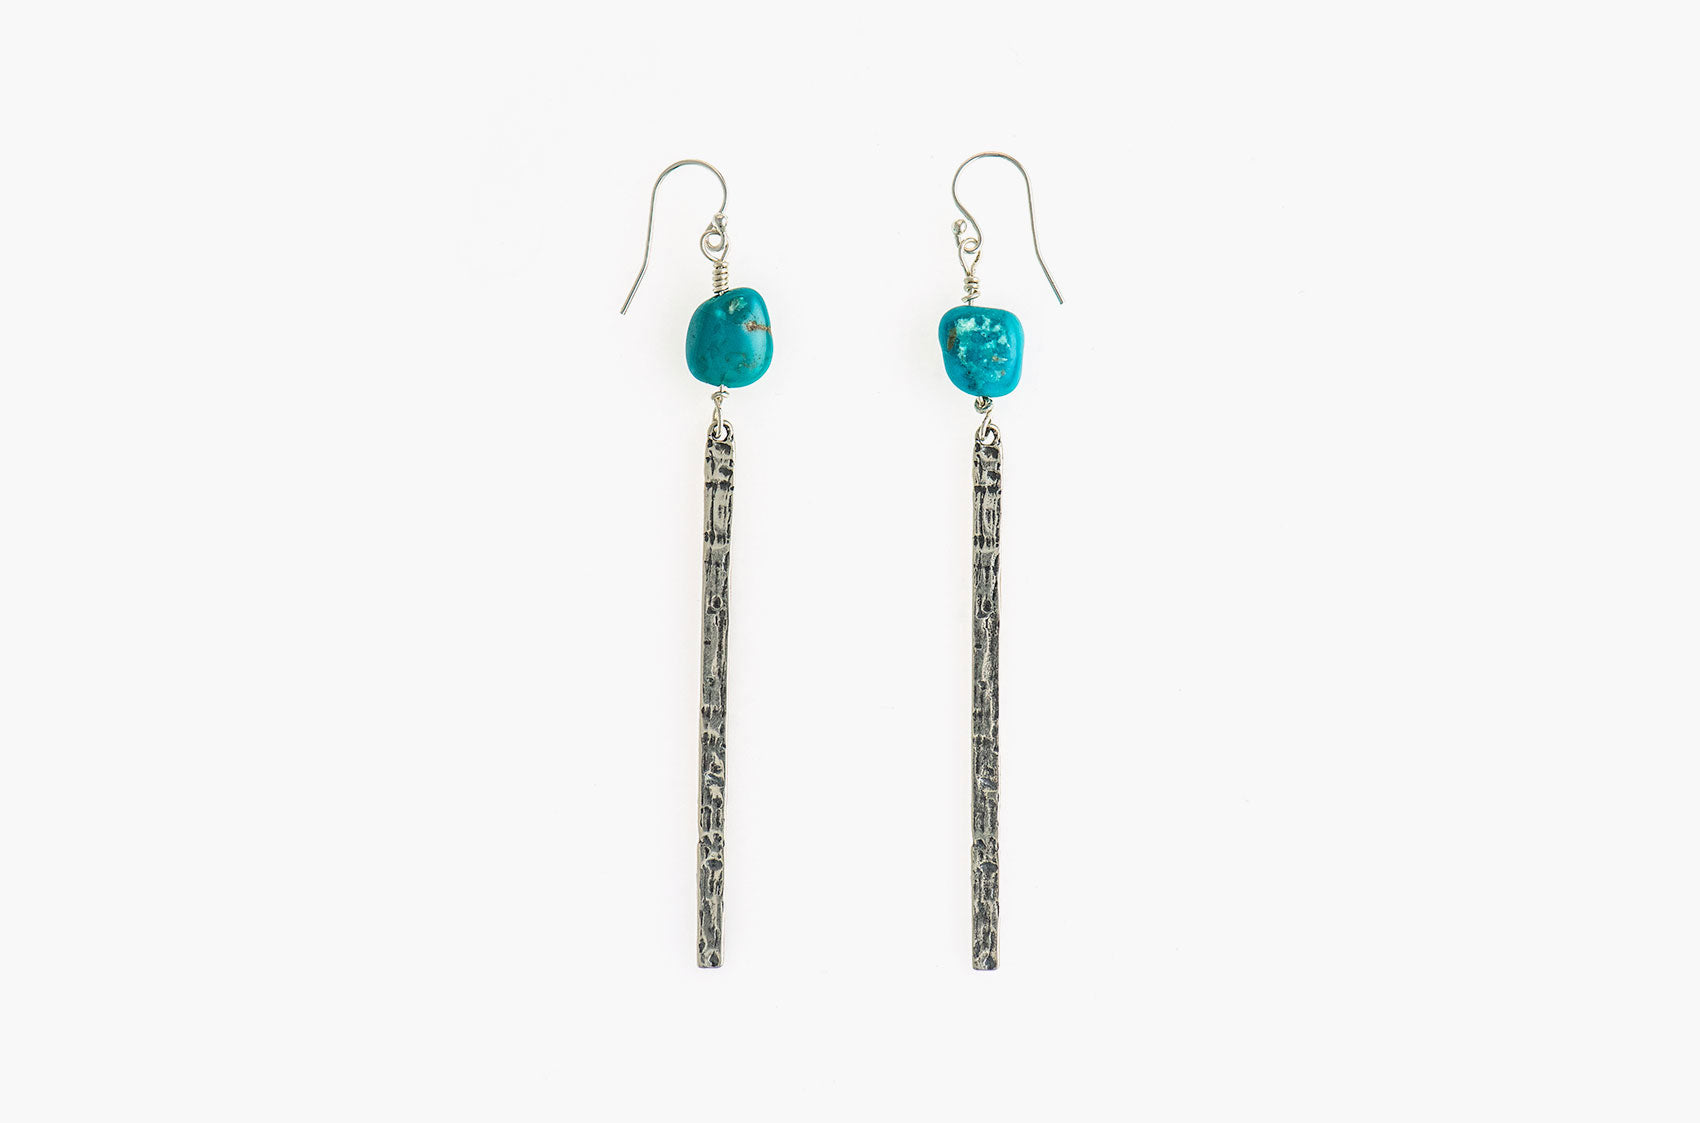 Silver & Stone. Artisan bar earrings